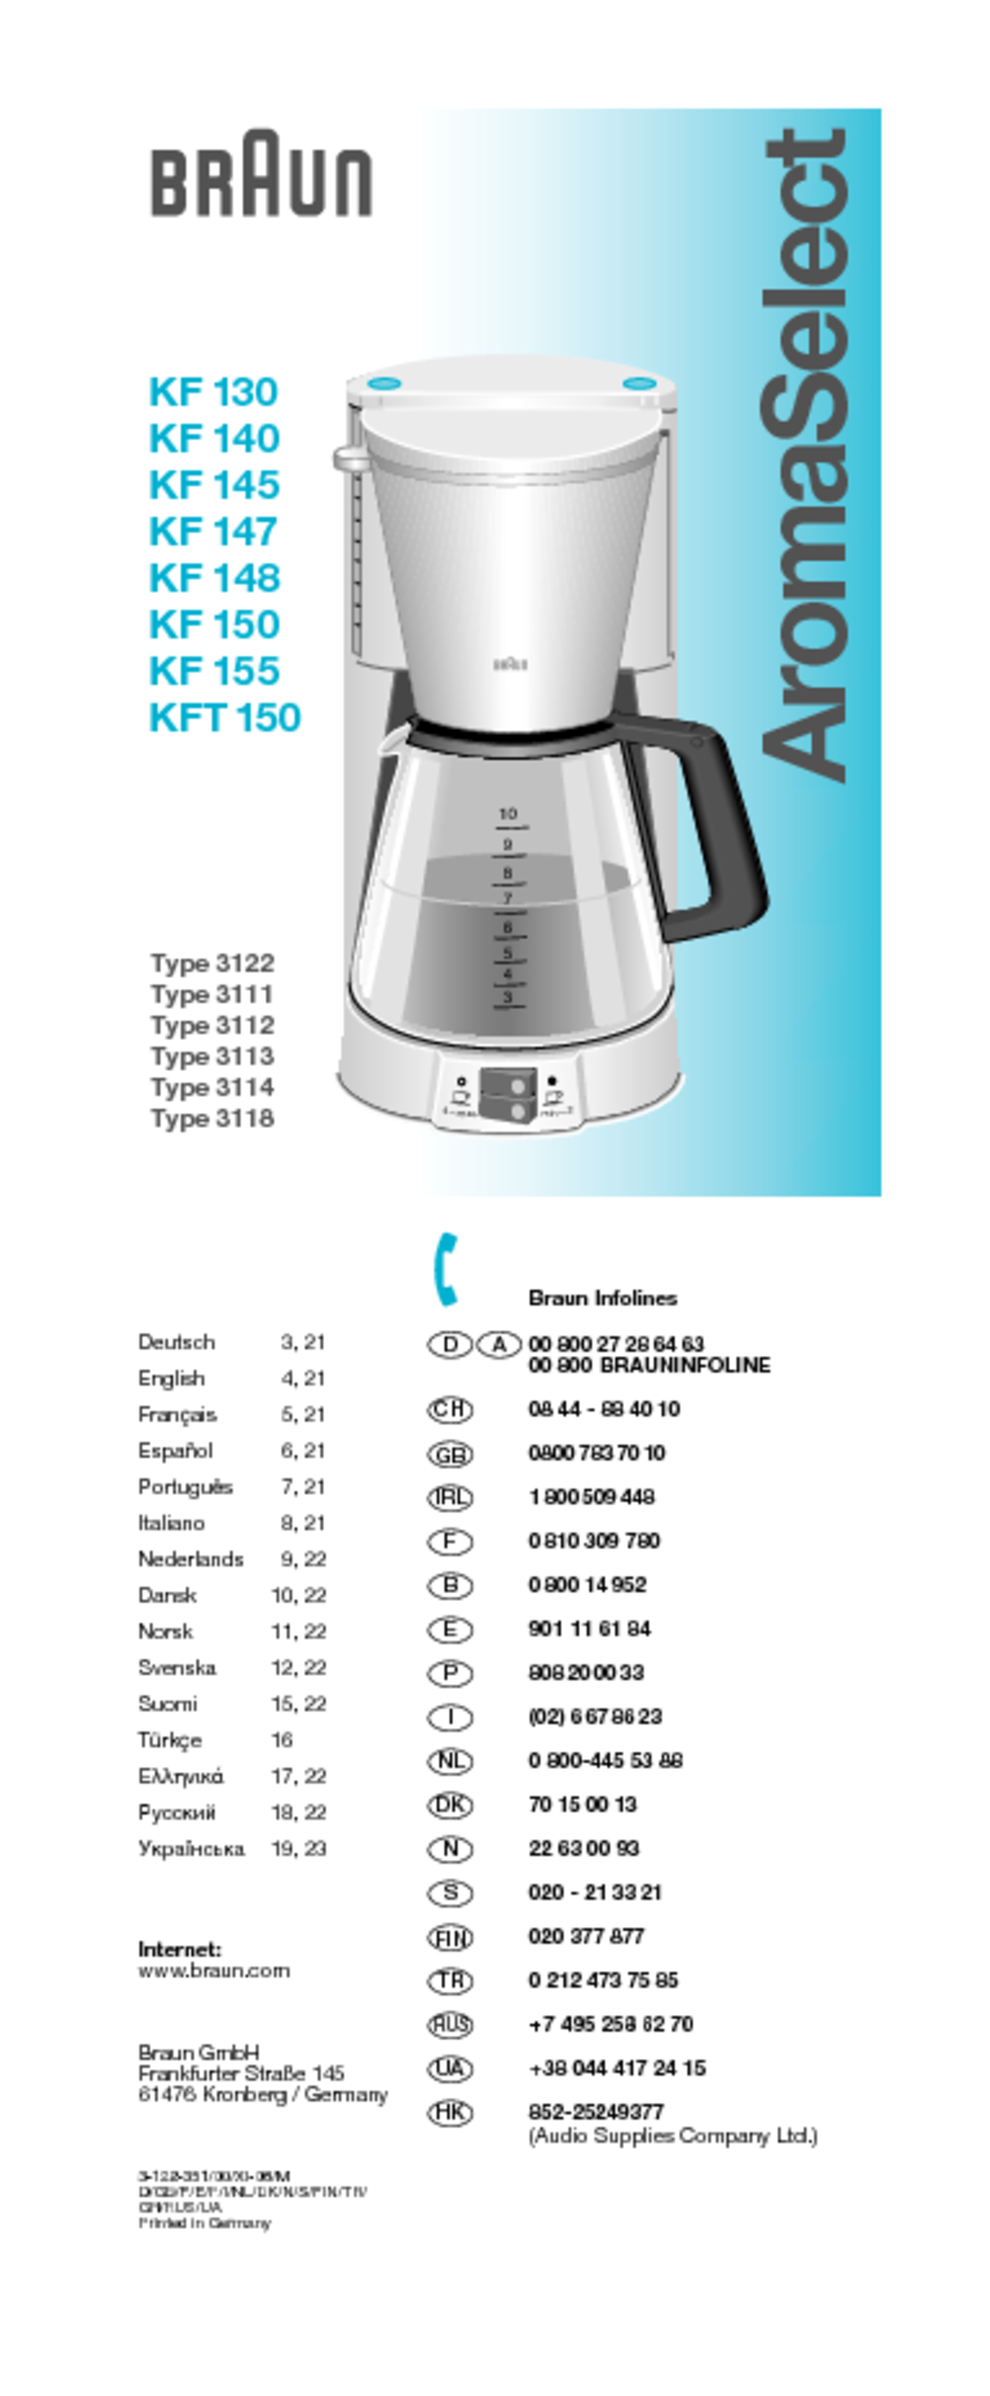 Download Braun 3106 Coffee Maker Manual - masterwebsites